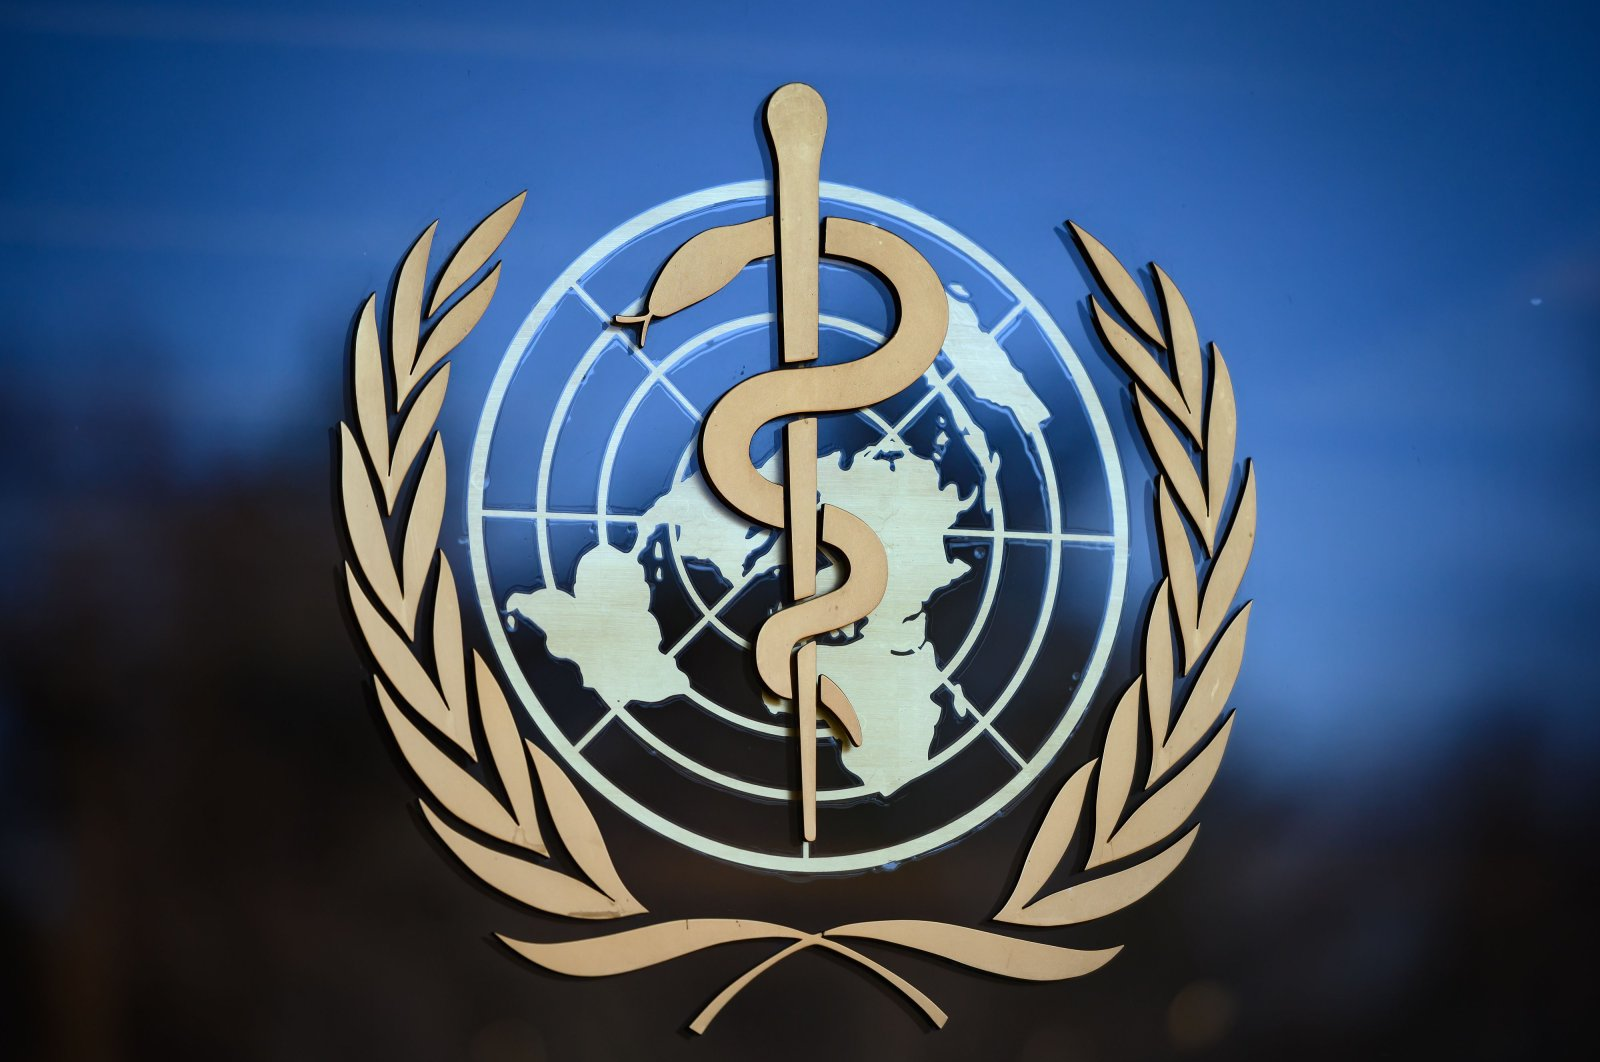 The World Health Organization (WHO) logo seen at its headquarters in Geneva, Switzerland, Feb. 24, 2020. (AFP Photo)